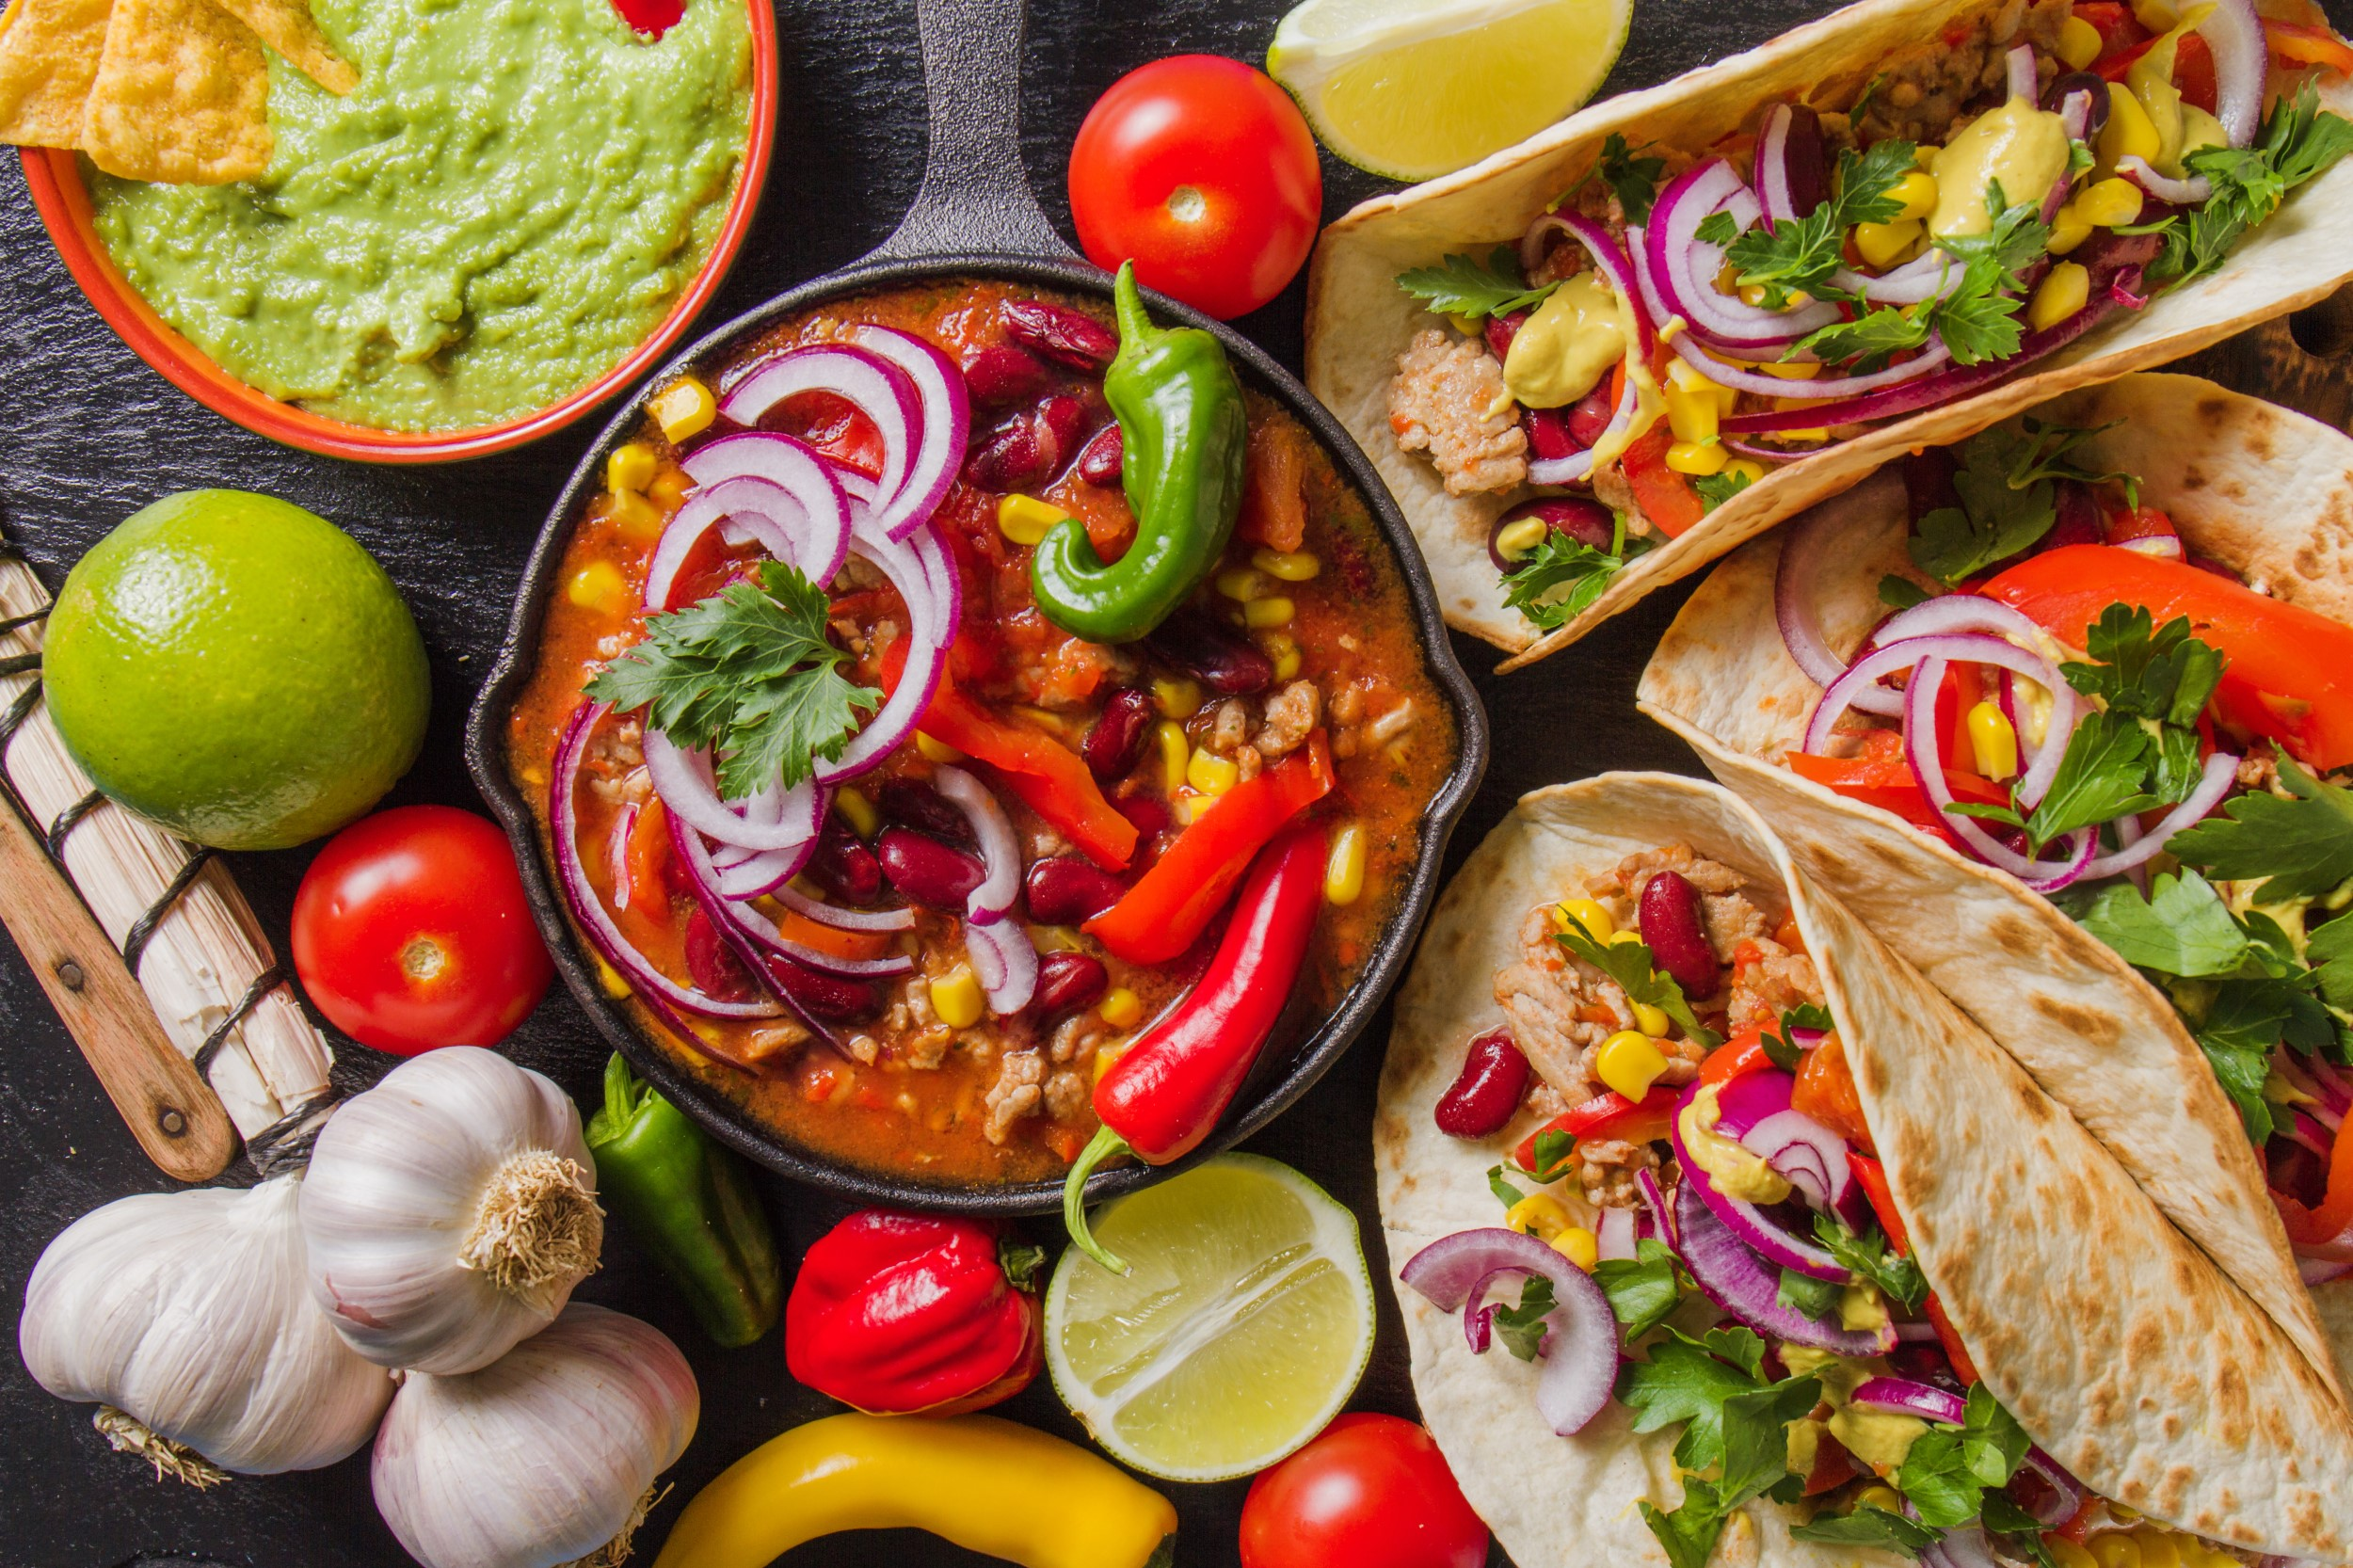 Recipe of the Week: Nacho Bouquets for Iftar